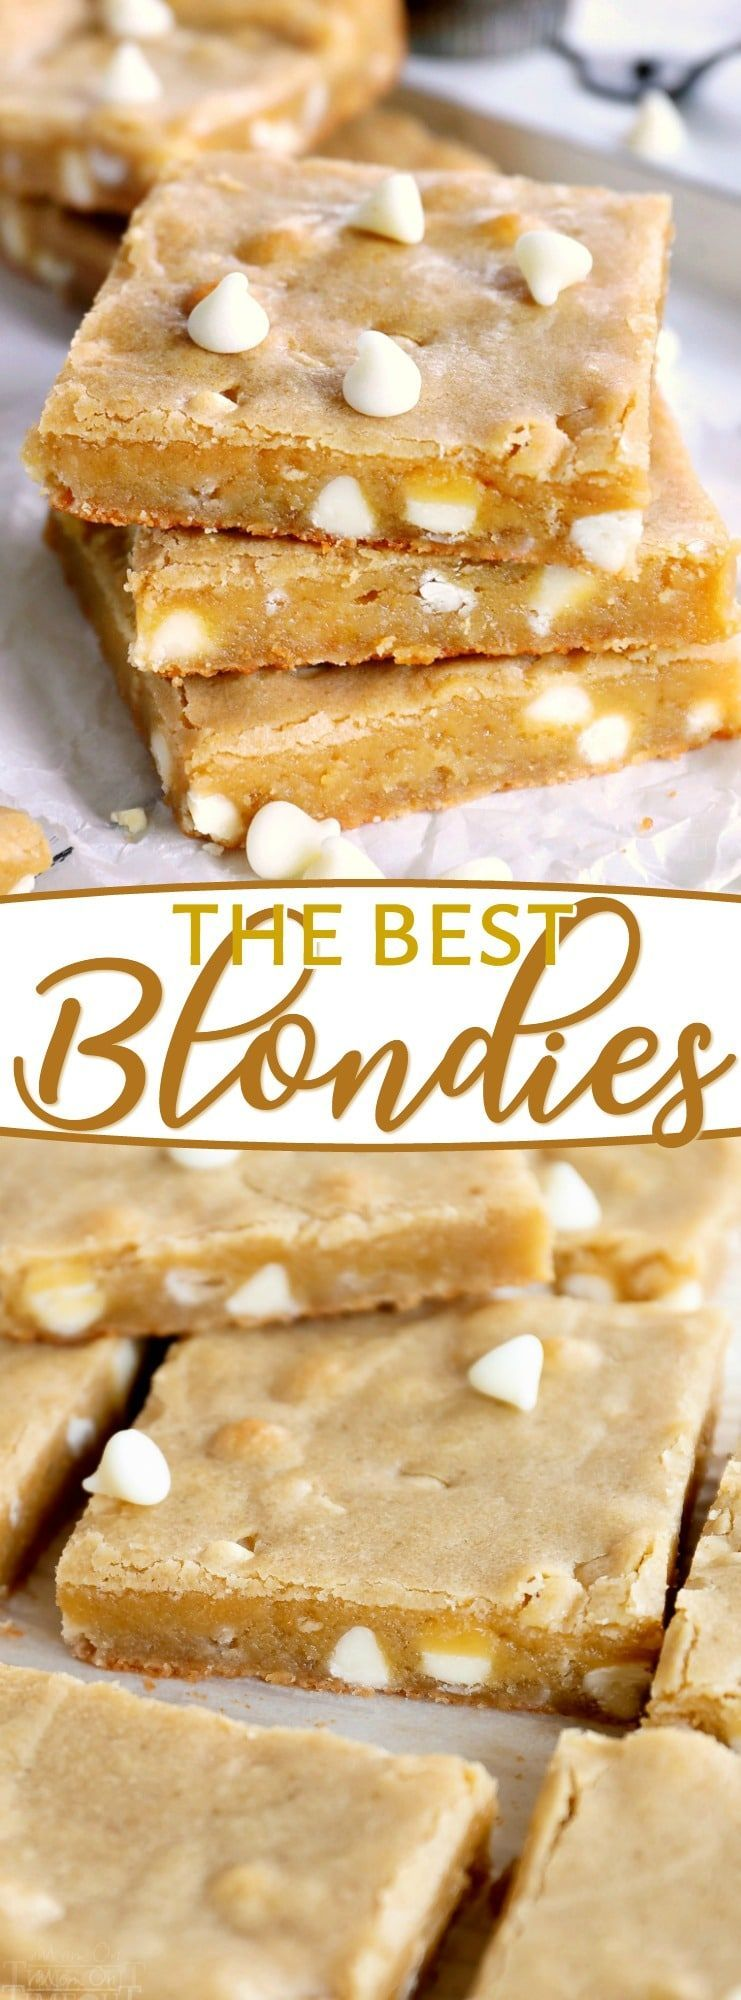 The Best Blondies Ive ever had! This easy, one-bowl blondie recipe yields extra chewy, buttery, ri